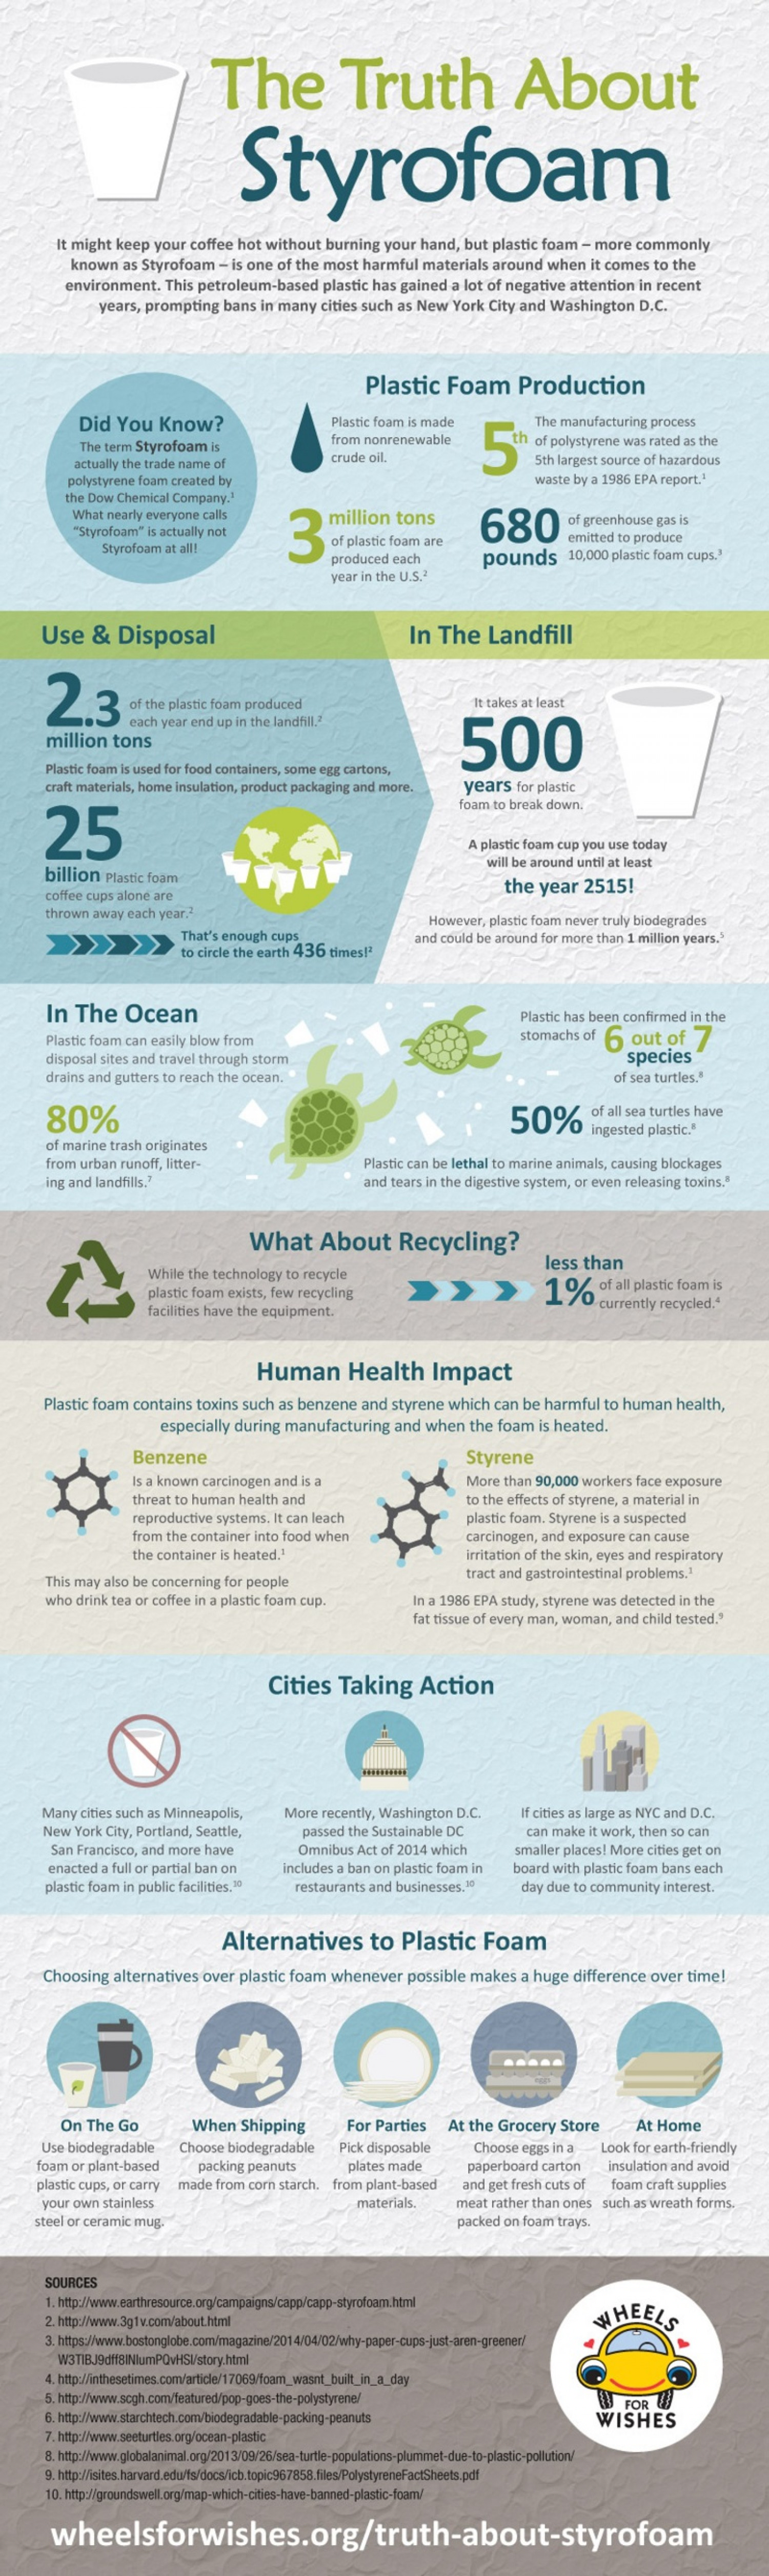 The Impact of Plastic Foam on Human Health and the Environment